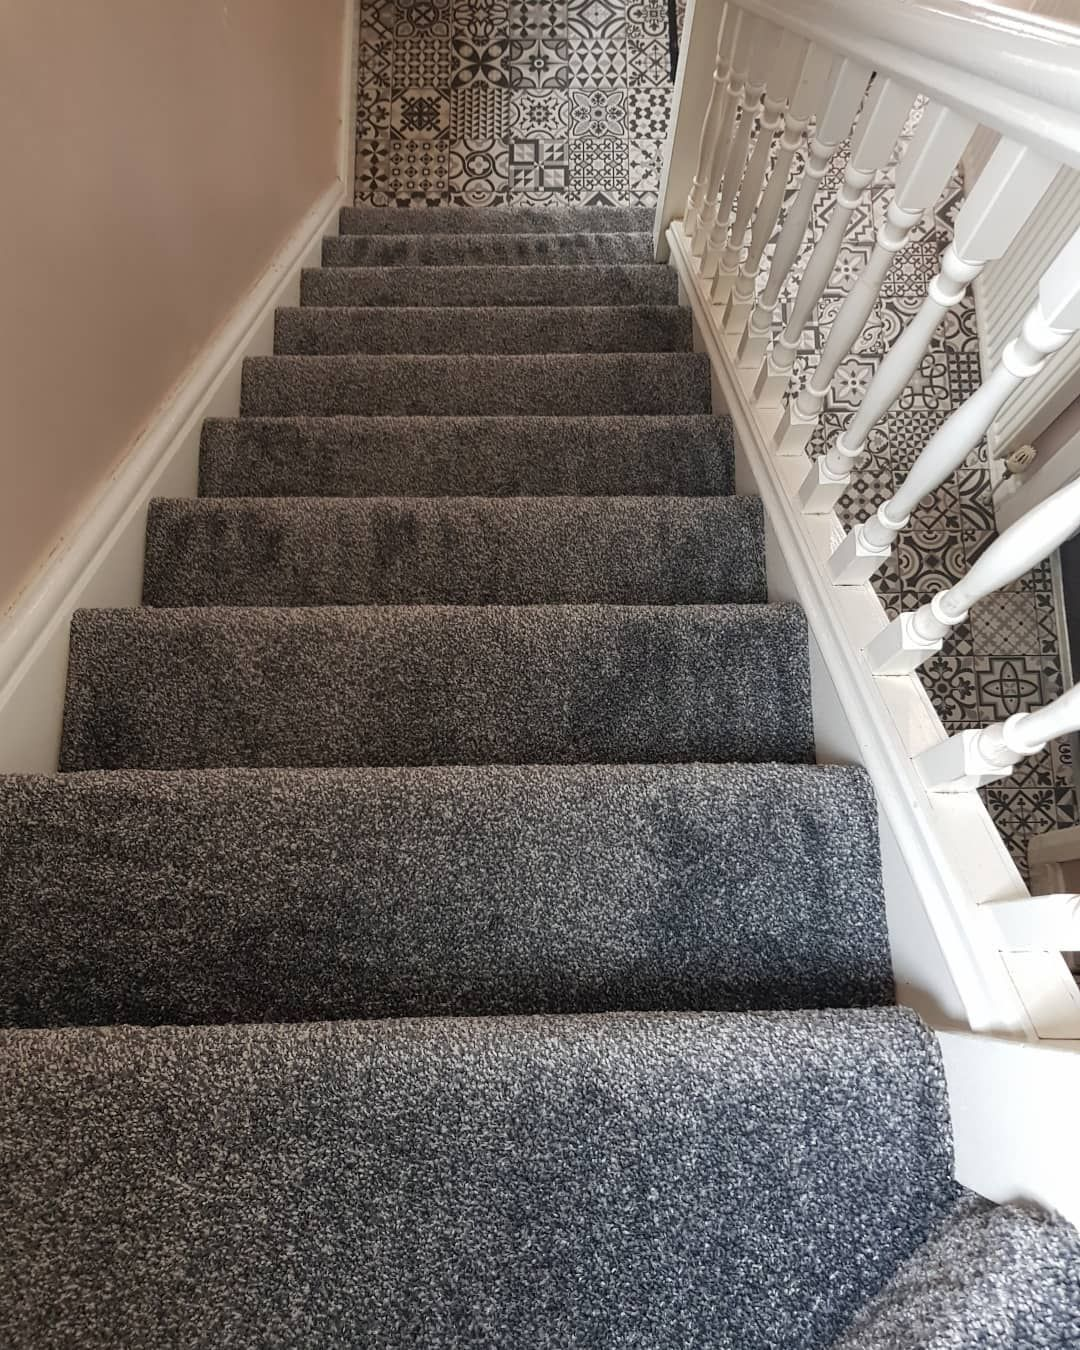 Very Popular Range Hong Kong Agate 276 Quality Carpet Supplied Fitted On A S Quality Carpets Carpet Installation Carpet Fitters